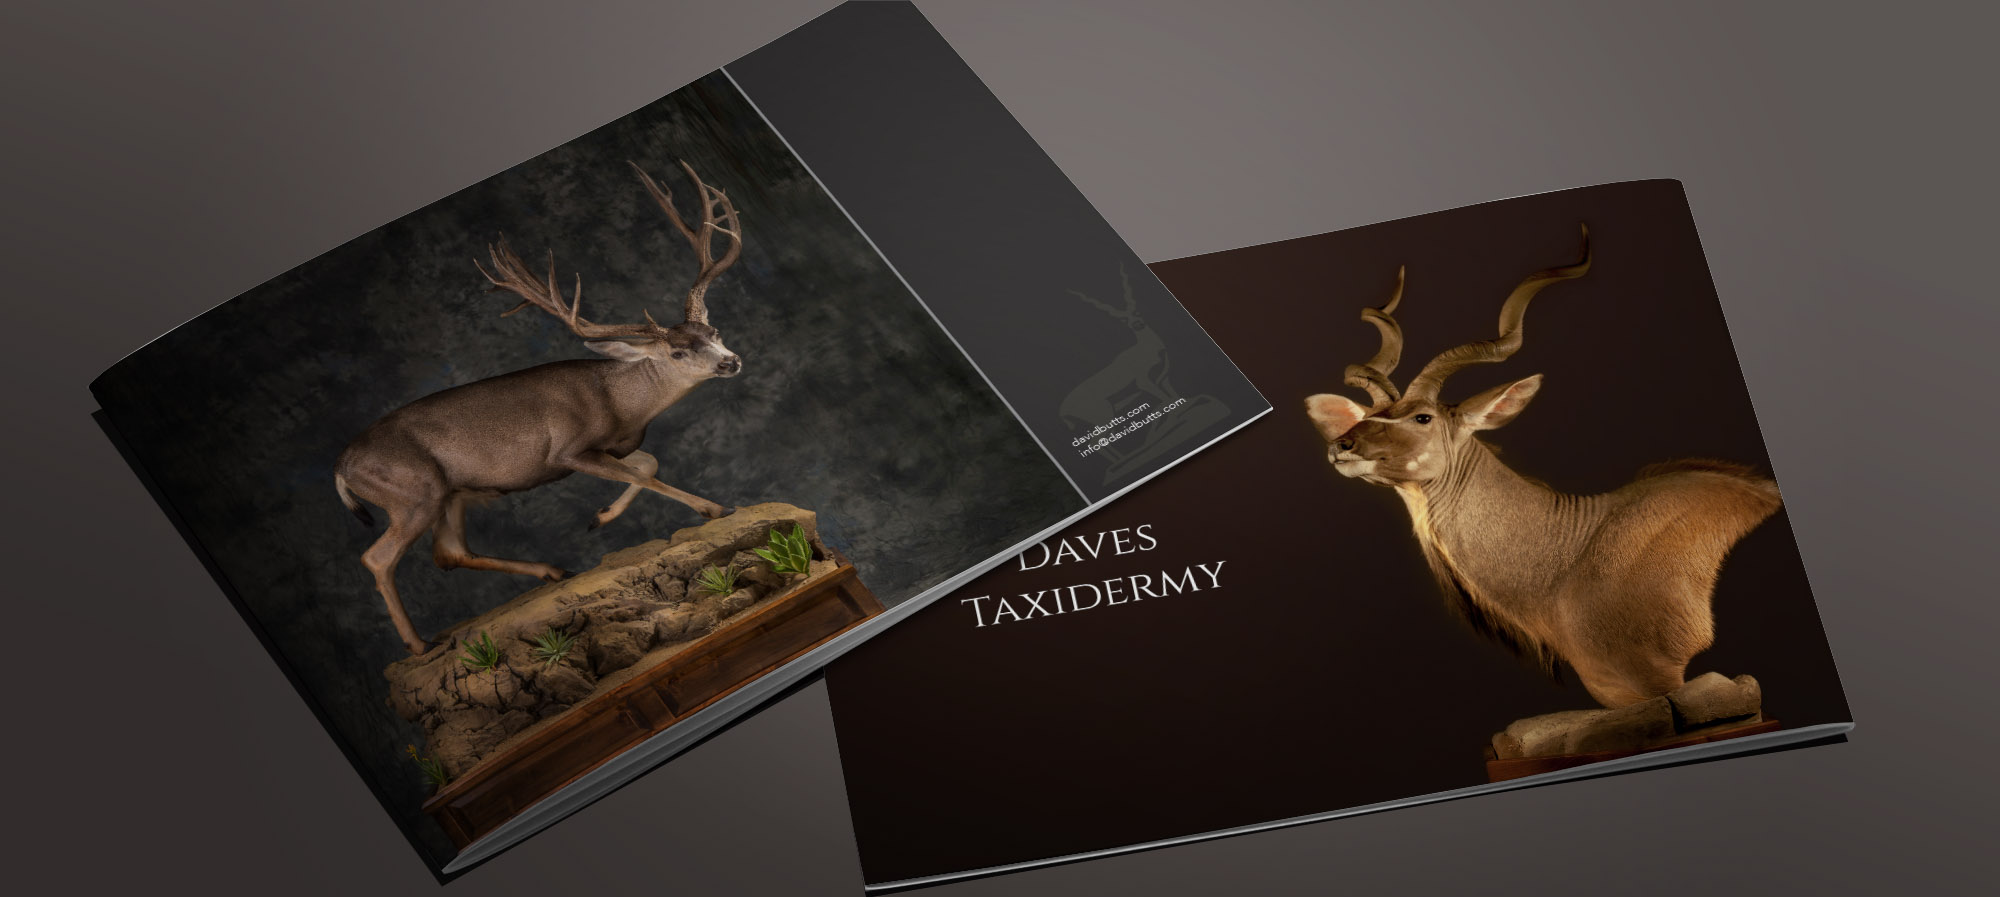 Daves Taxidermy – Joshua Butts Design